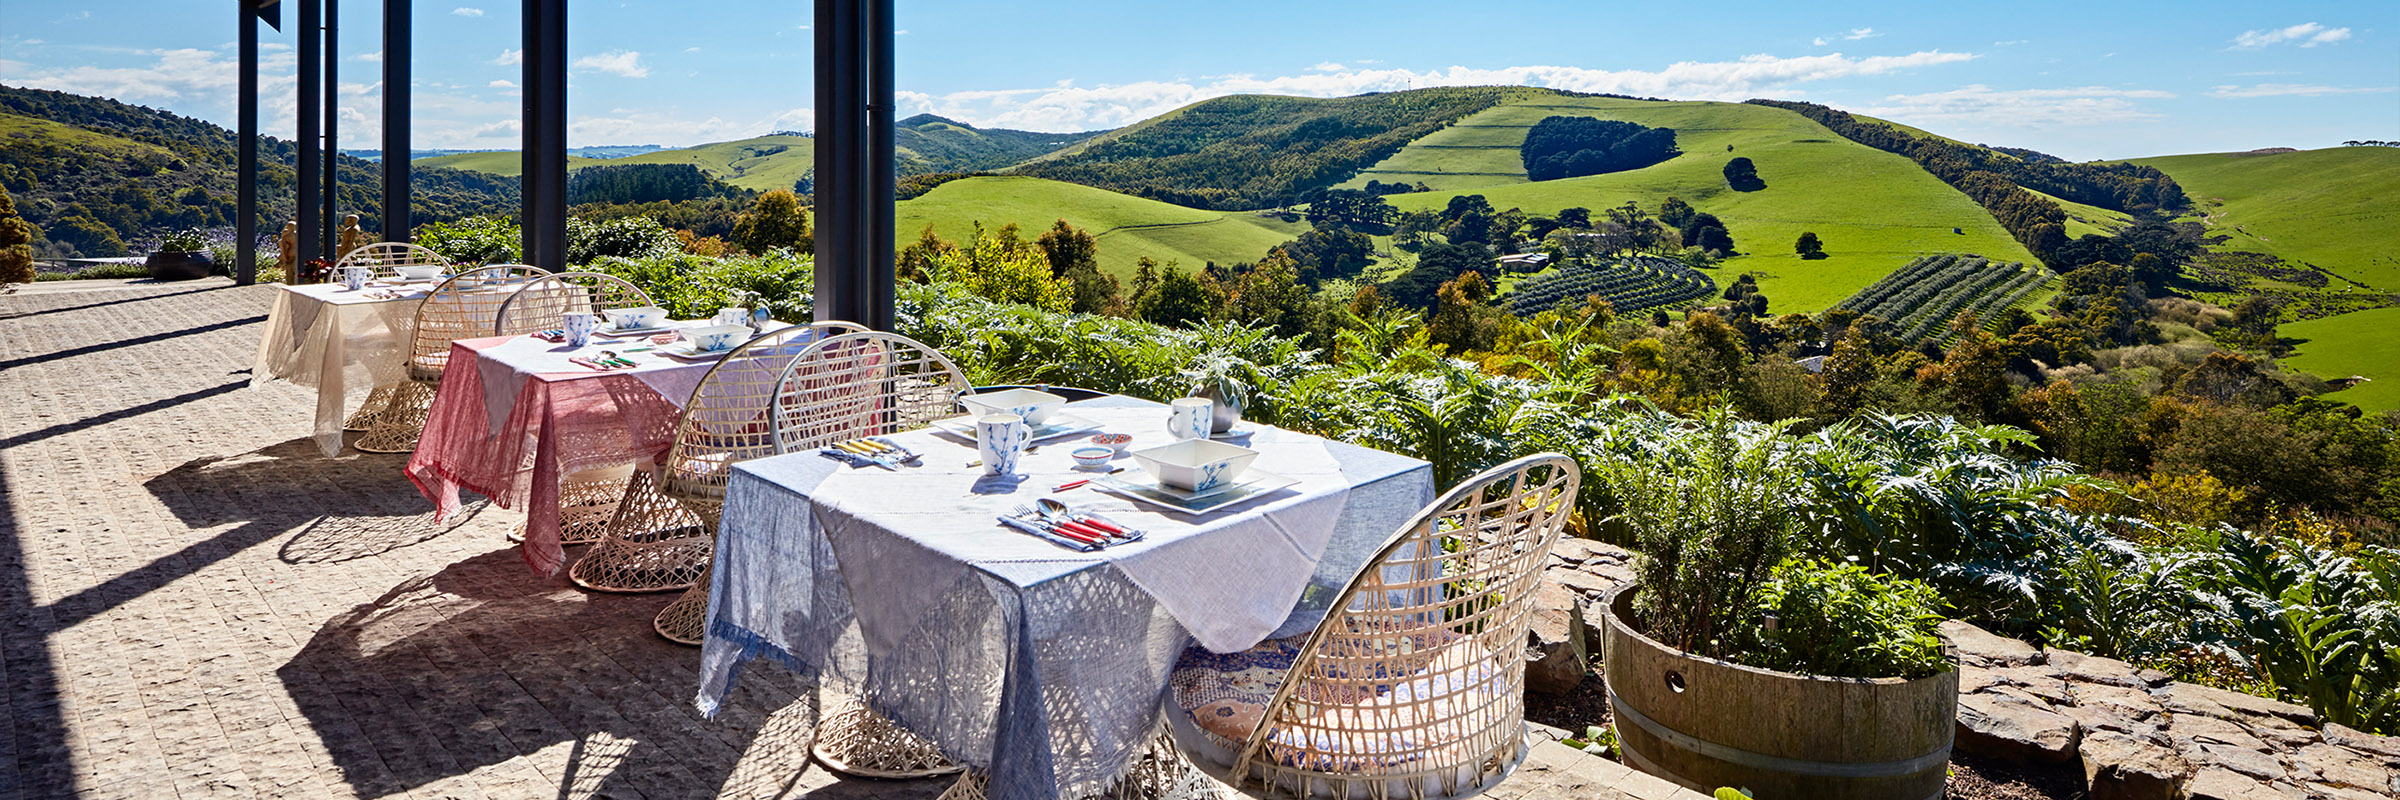 enjoy the view from the veranda at breakfast